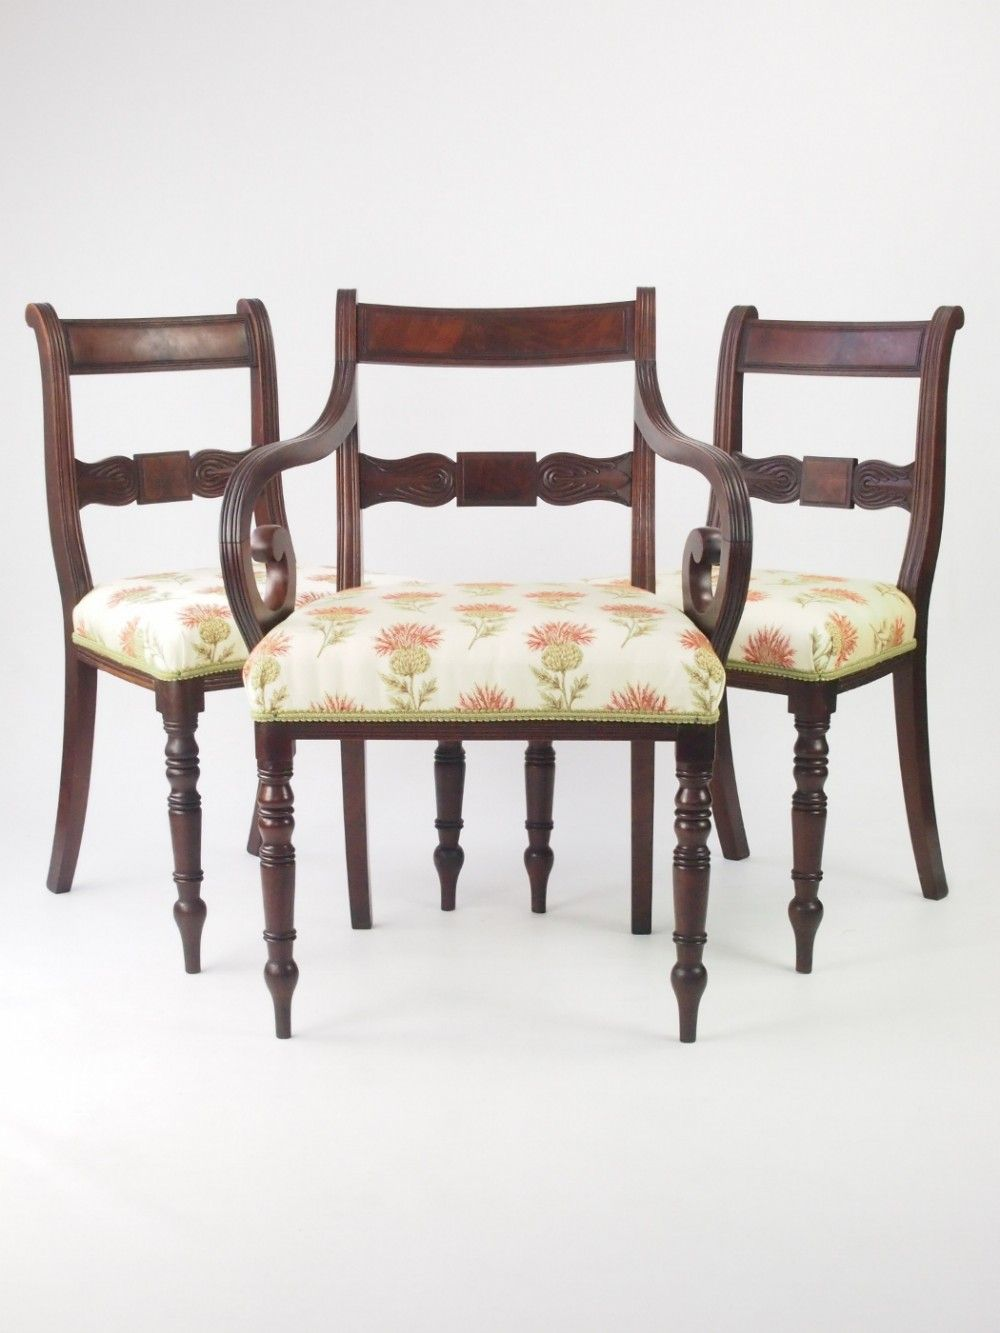 Antique regency dining chairs - Set Antique Mahogany Regency Dining Chairs 311188 Antique Mahogany Dining Chair Mahogany Set